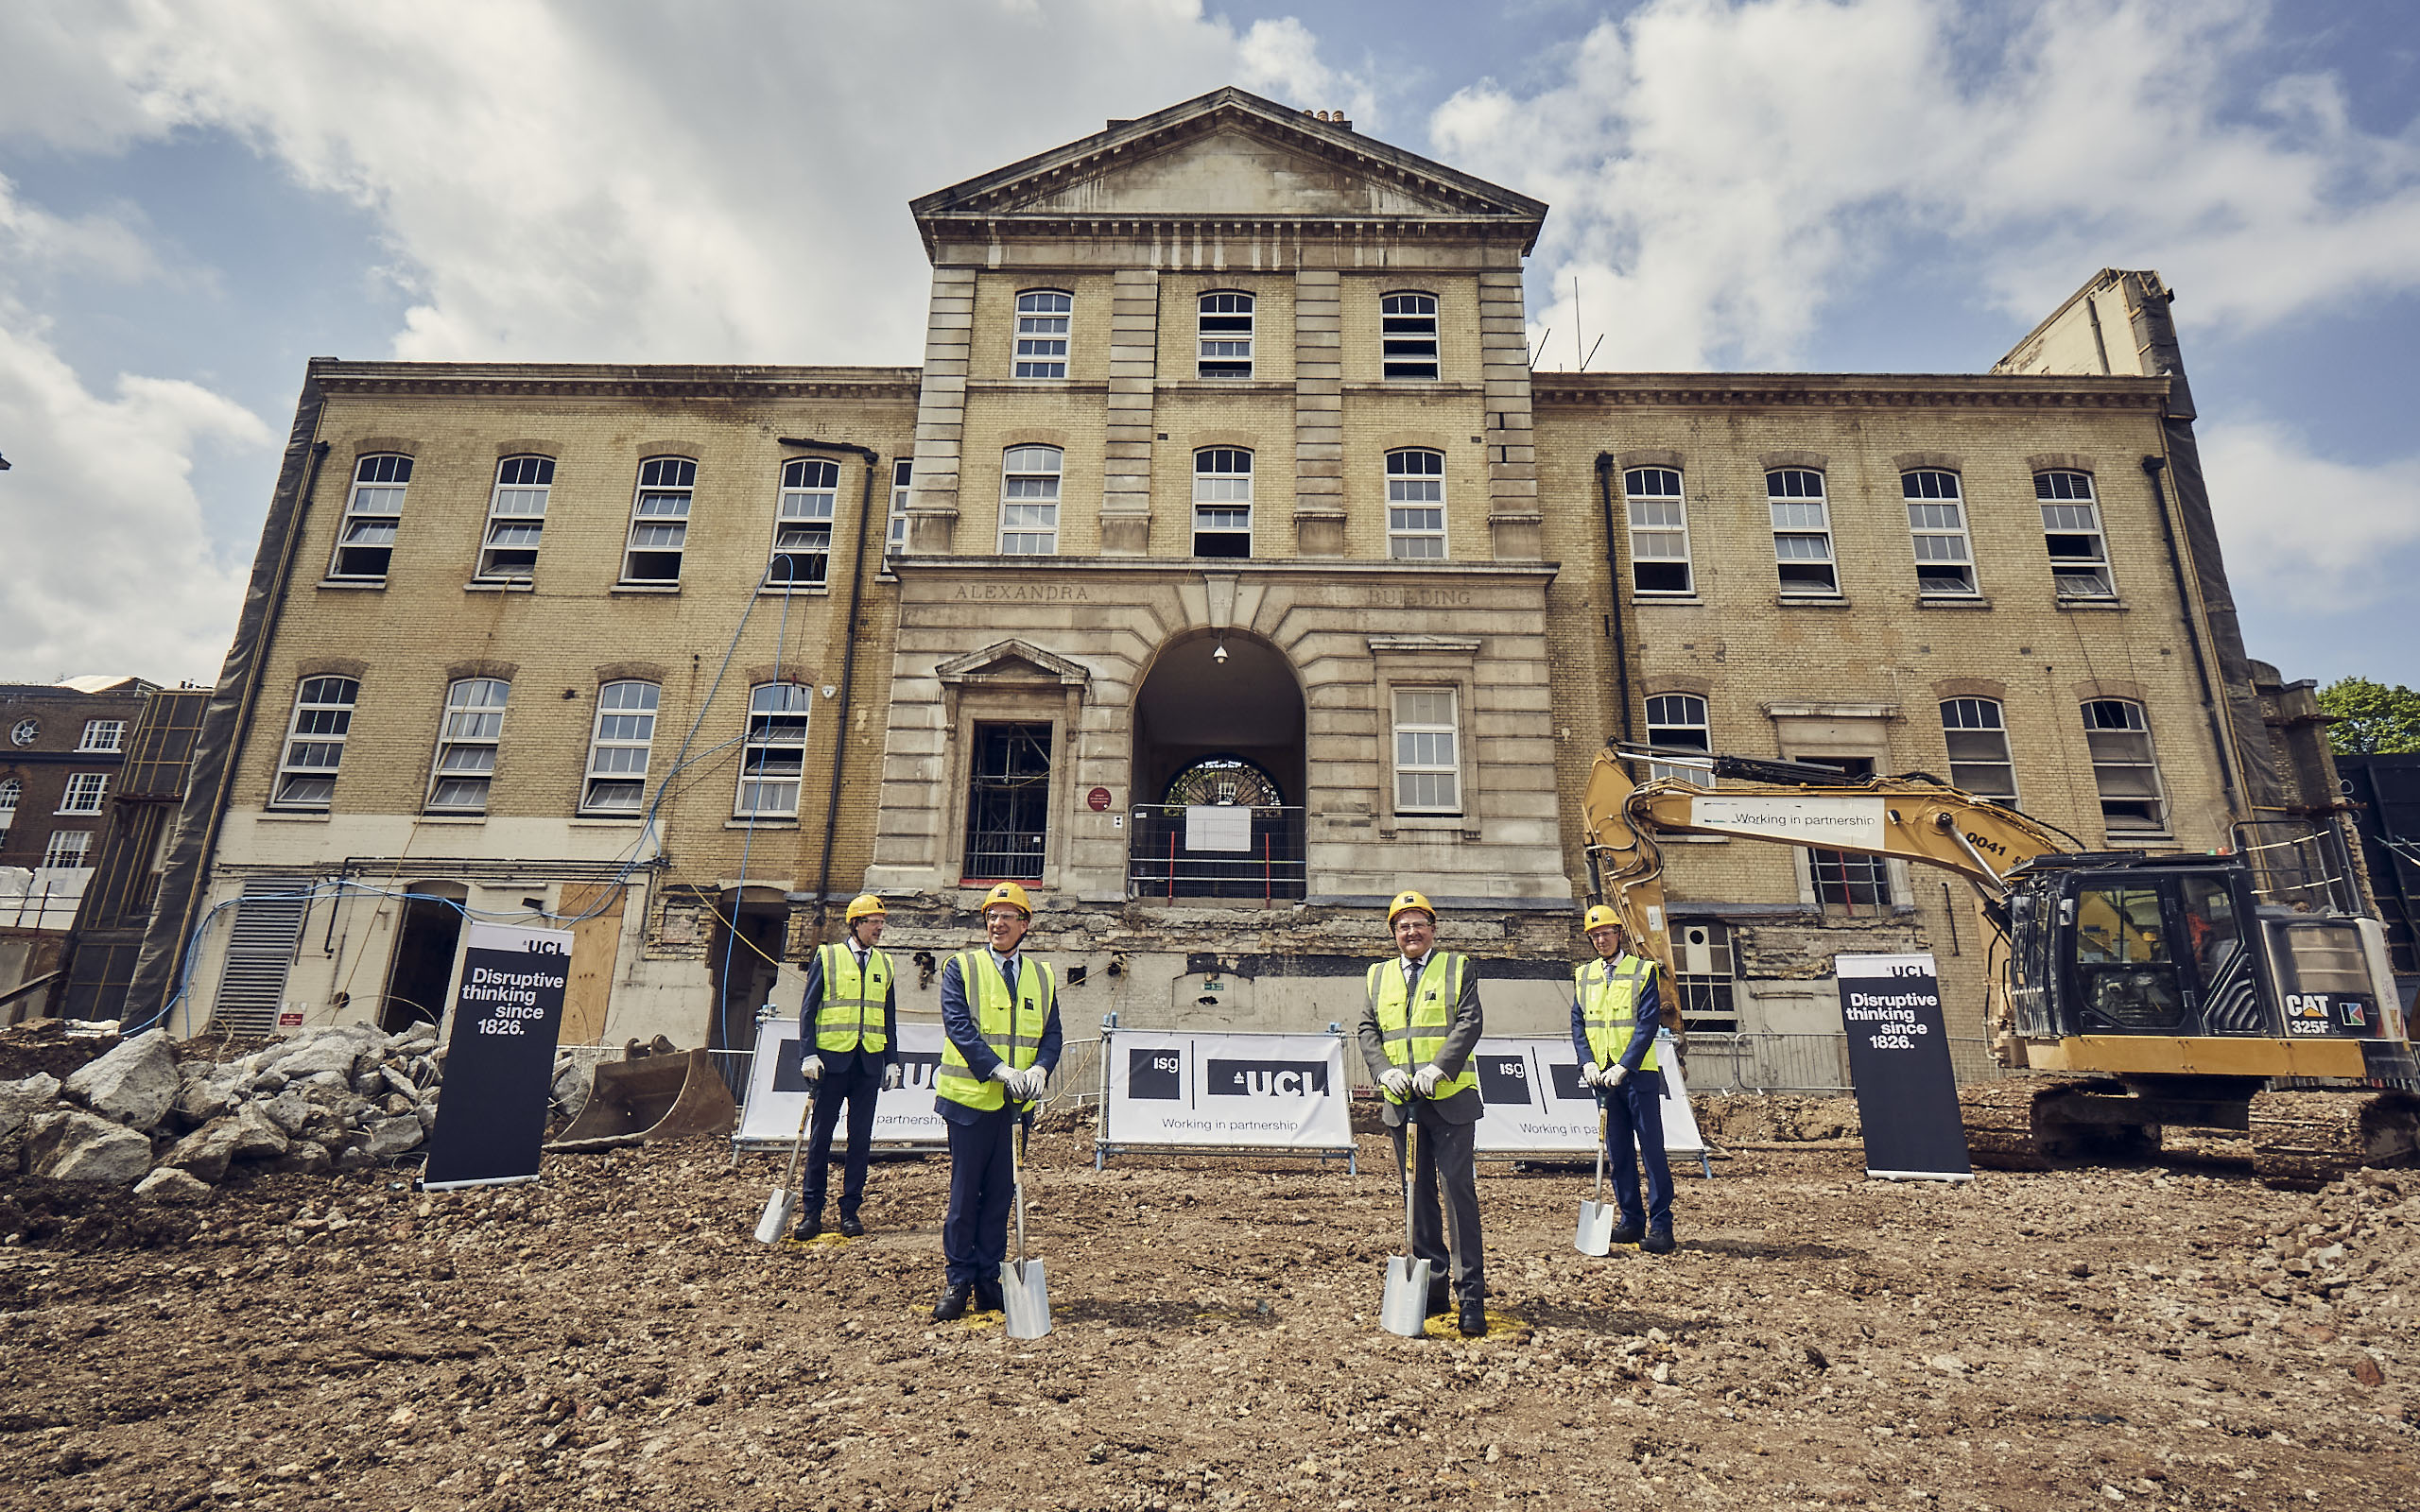 ground breaking of new UCL Neuroscience facility